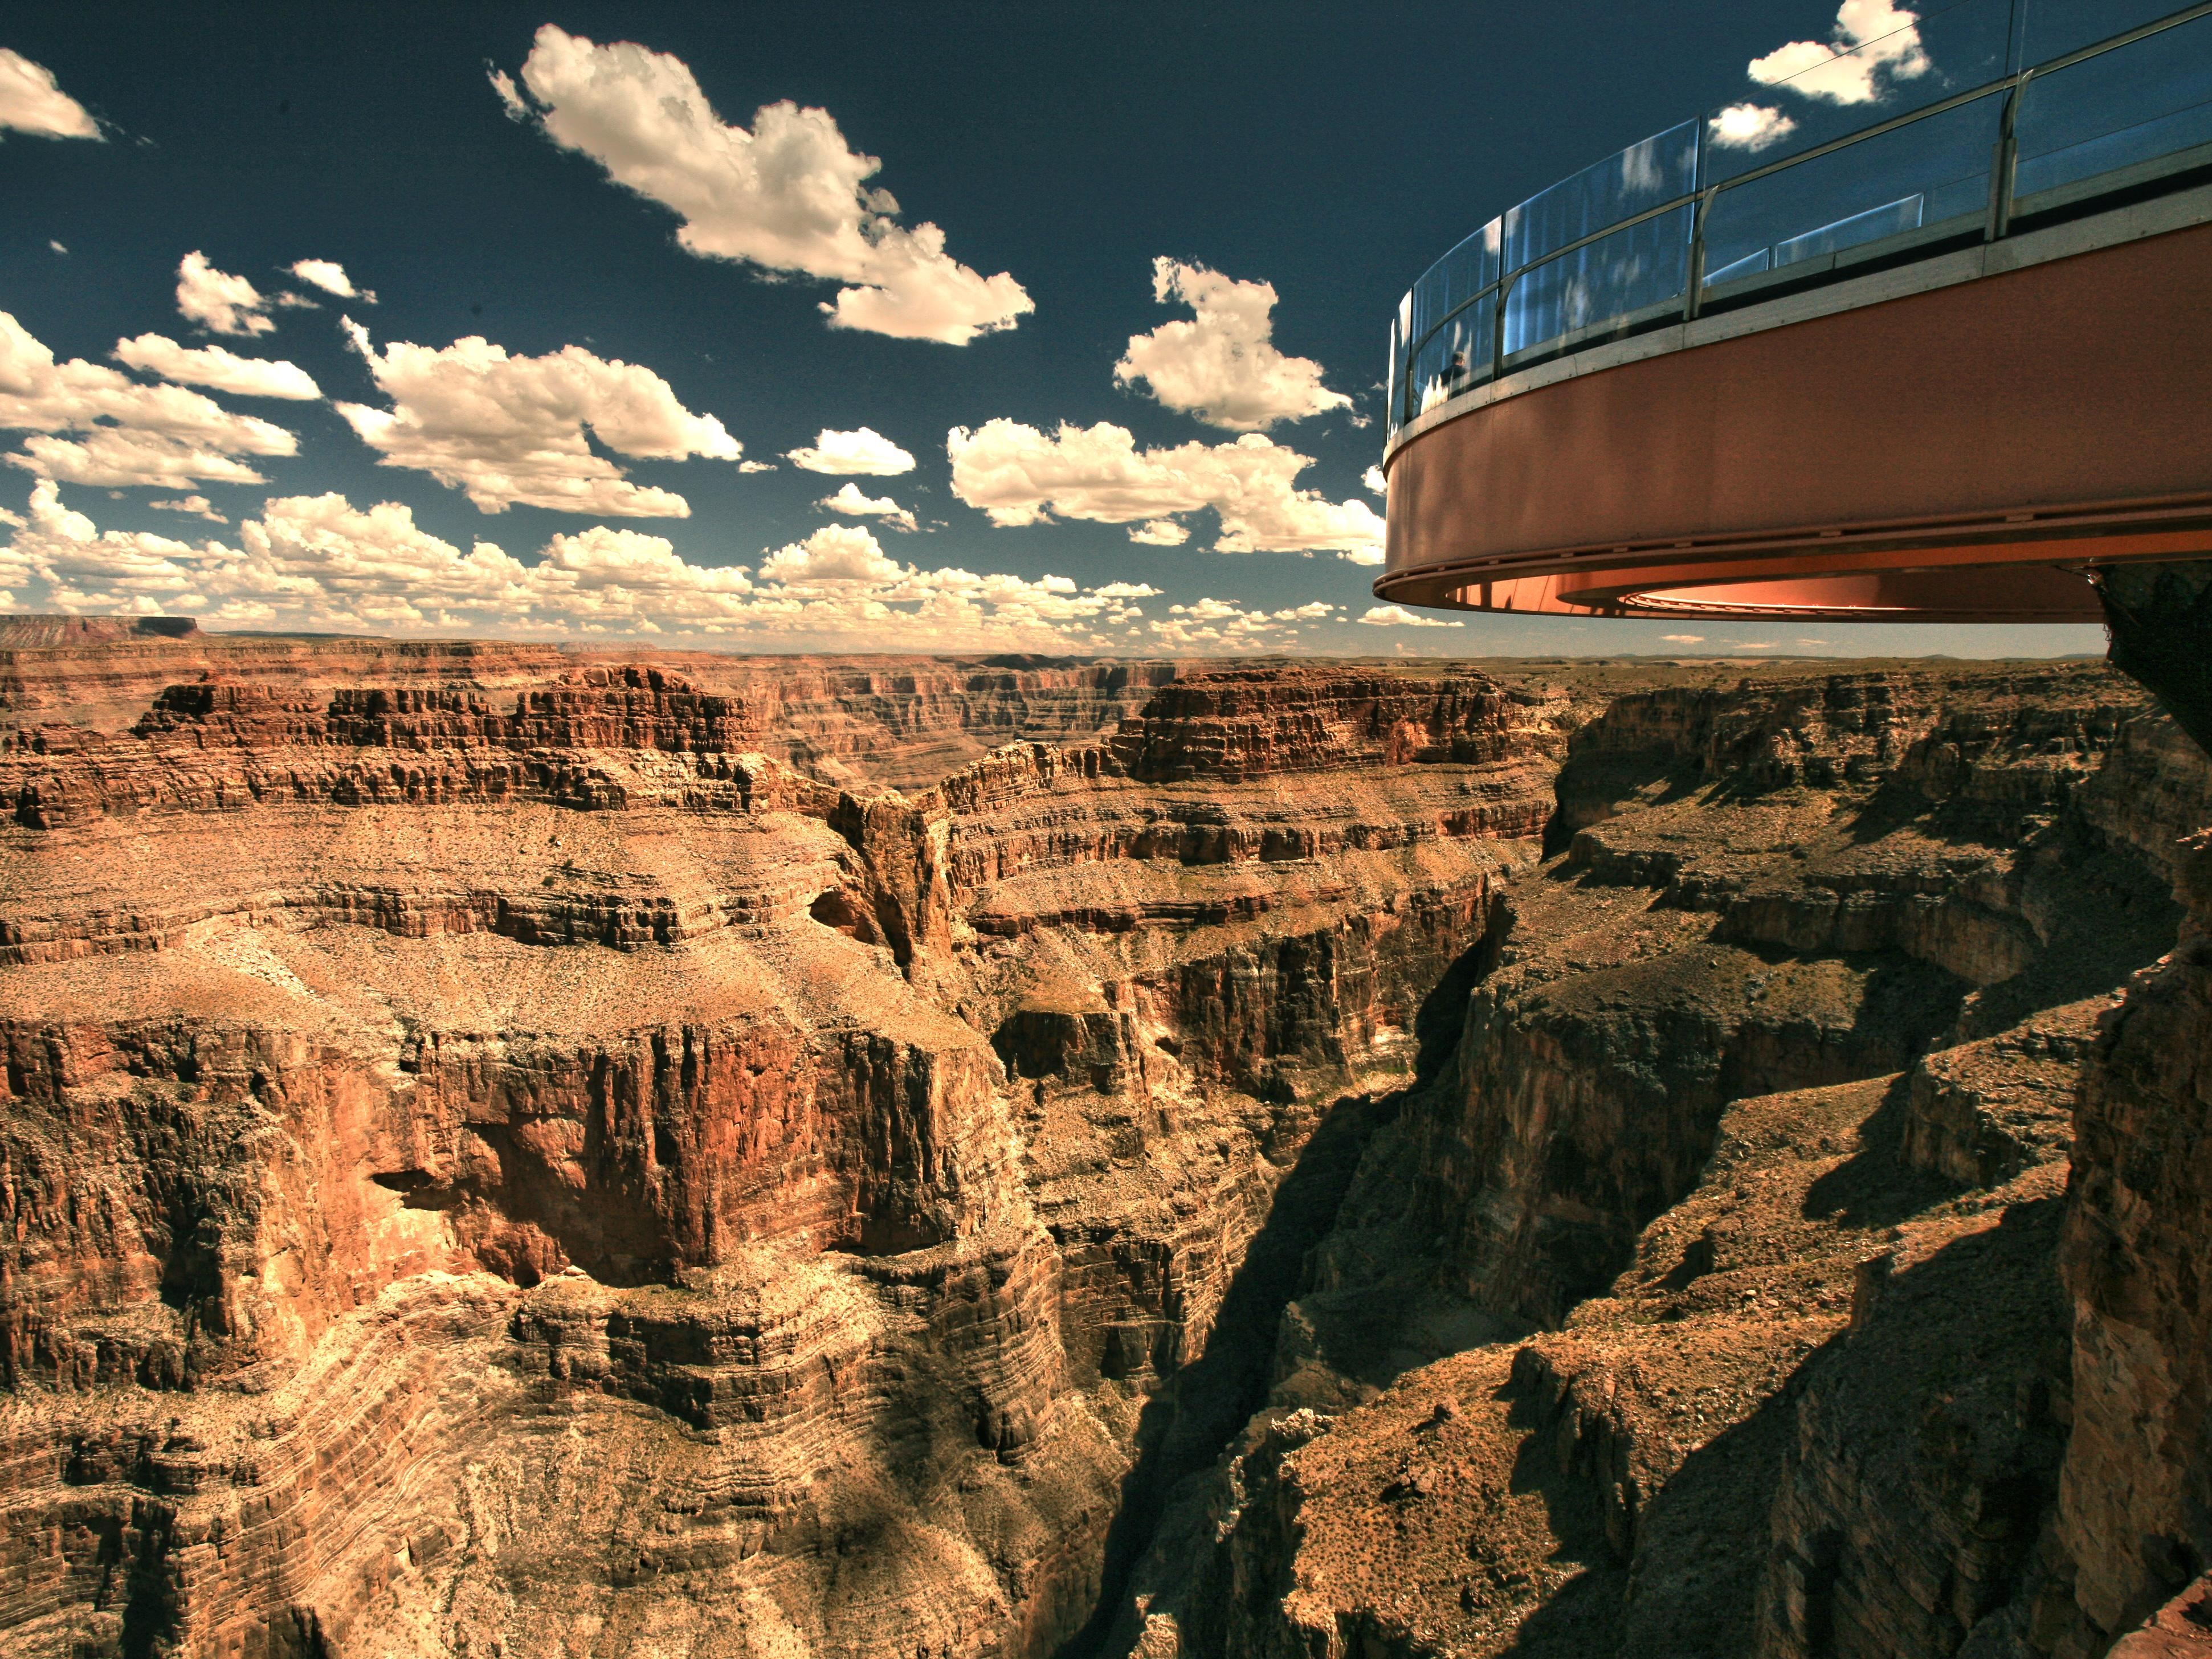 helicopter and boat ride grand canyon with La To Las Vegas Grand Canyon West Rim Skywalk 3 Day Tour 073 261 on Grandcanyon in addition Grand Canyon Skywalk besides Play heavy metal sousaphone tuba shirt 235900823857974107 besides Lnauslv726wrhd furthermore Viewposts.